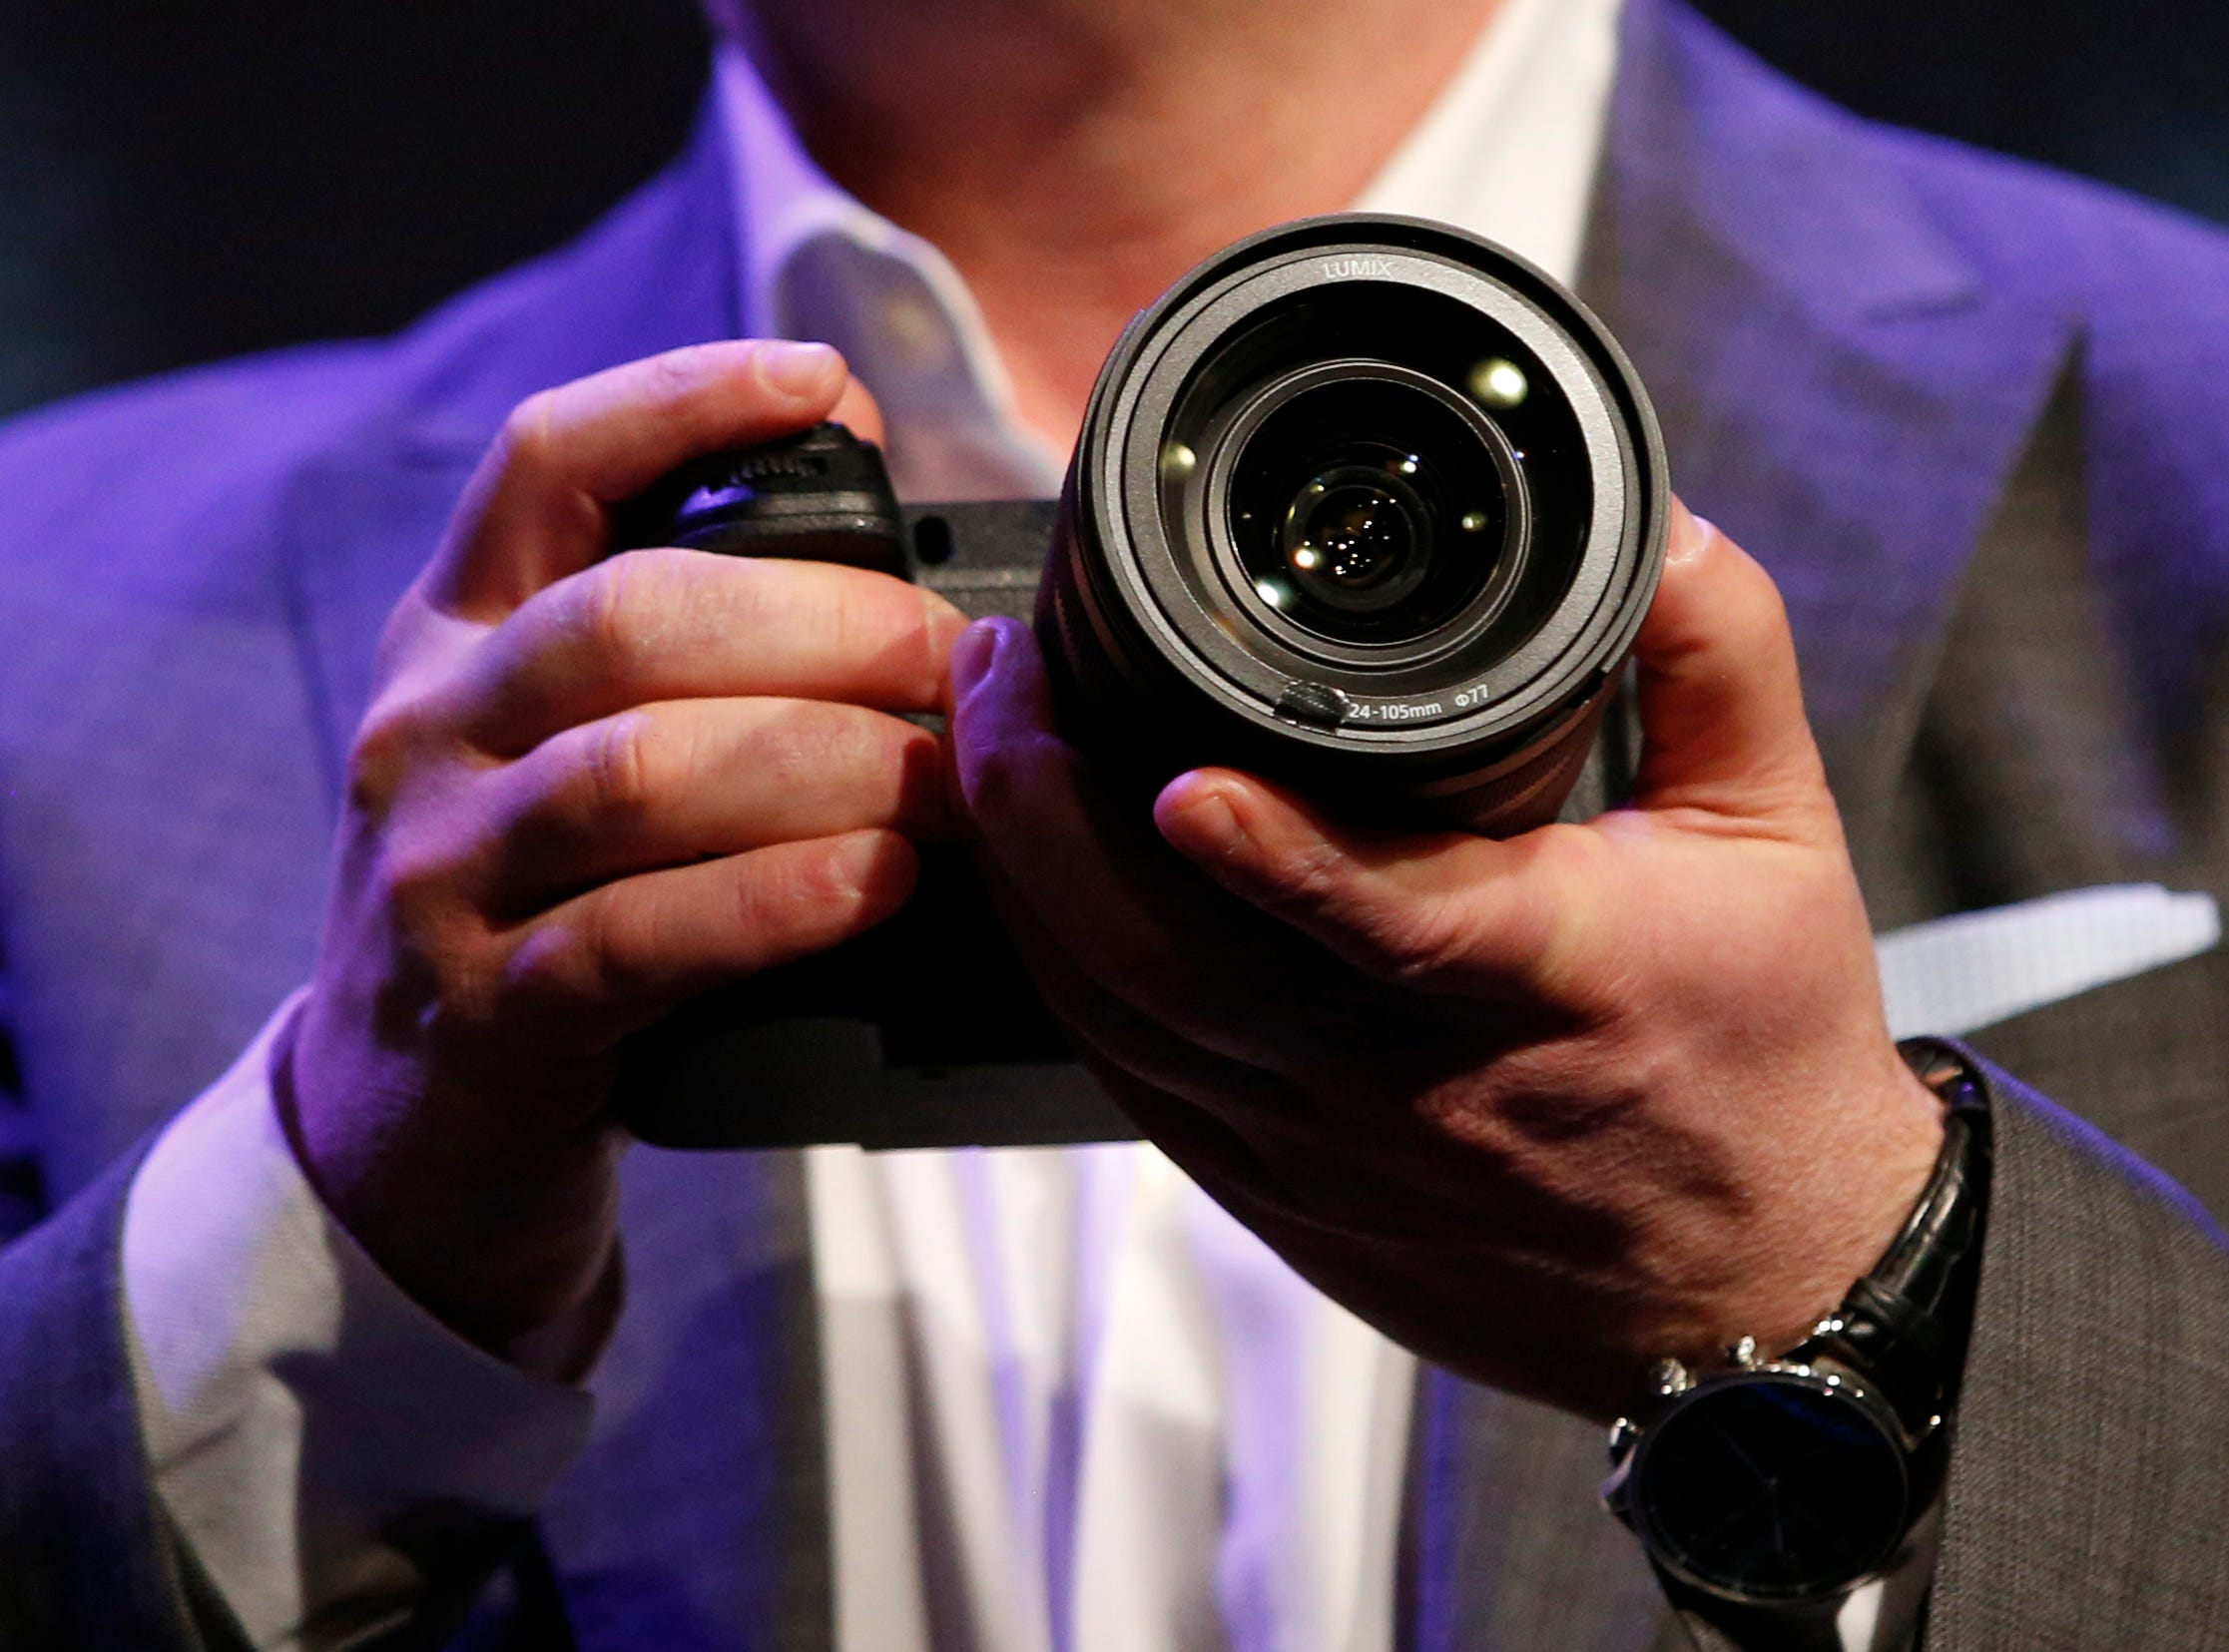 Michael Moskowitz, president, Panasonic Consumer Electronics Company, holds an S Series camera during a Panasonic news conference at CES International on Monday, Jan. 7, 2019, in Las Vegas.